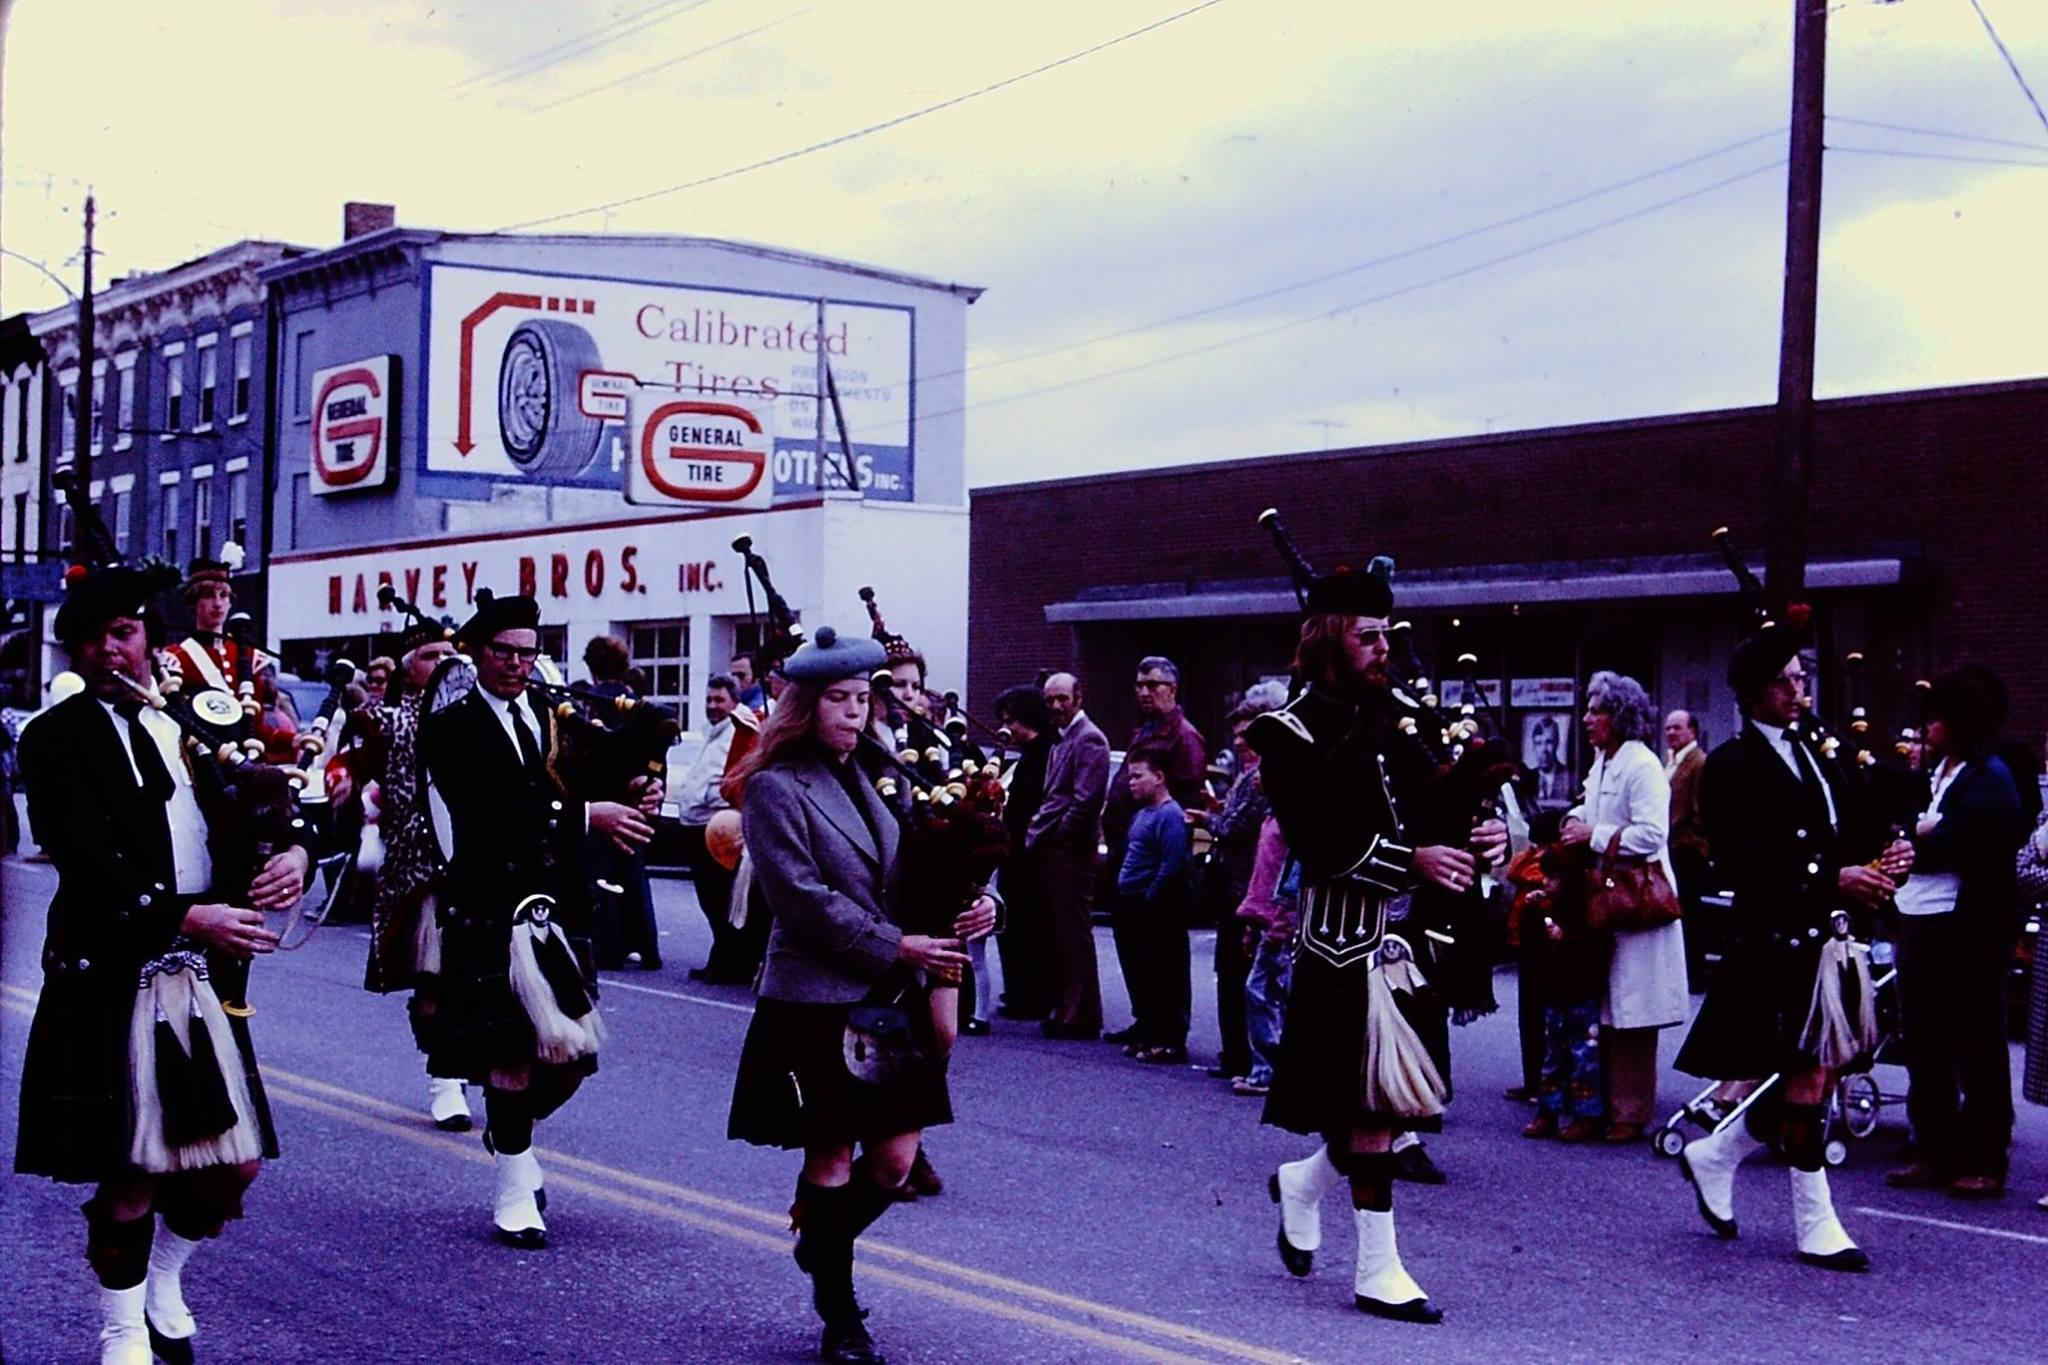 Bagpipers Play march down Main Street America, 1975. Vintage General Tire and Harvey Bros. signs are visible in the background.